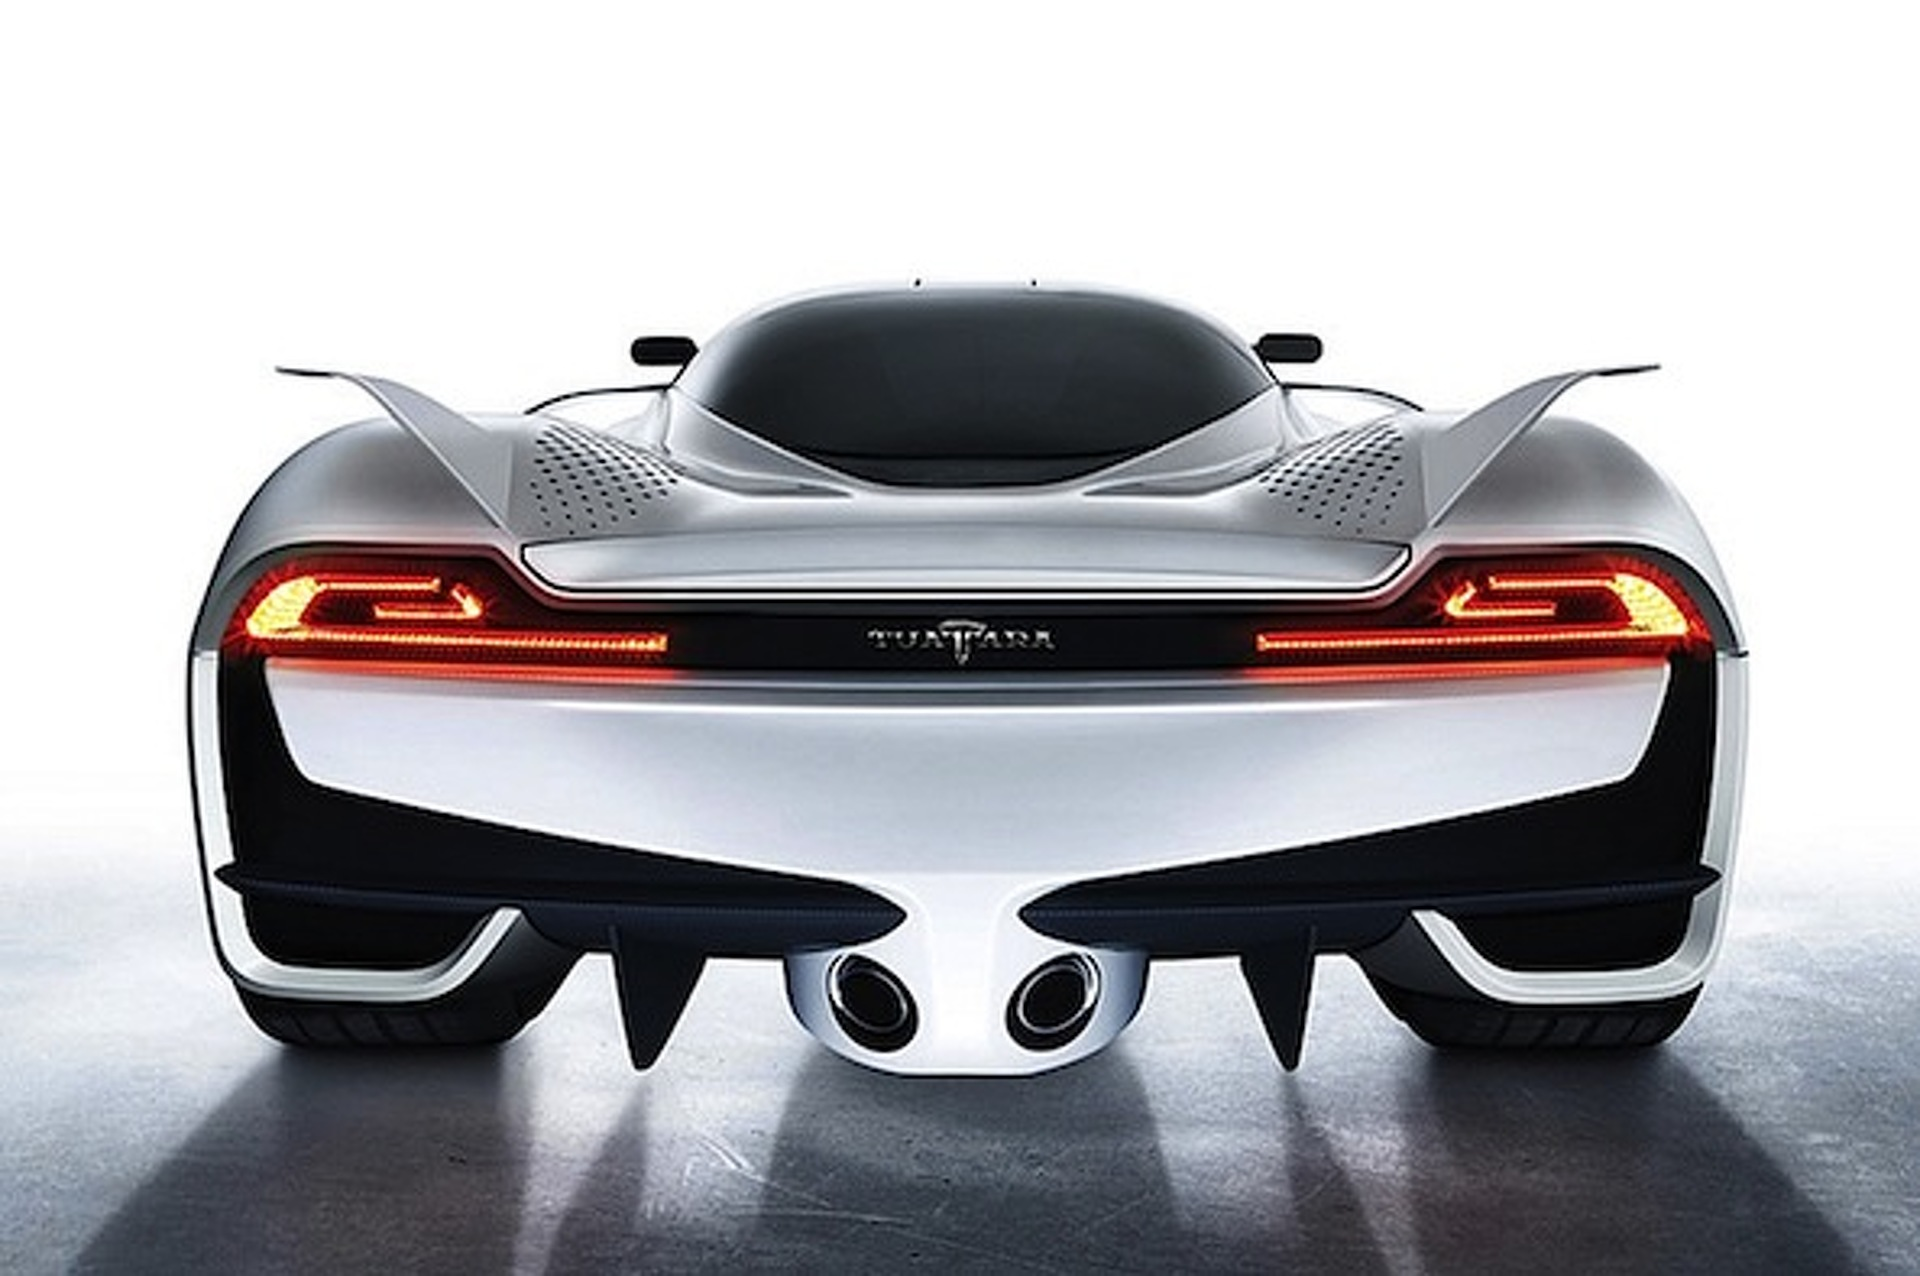 SSC Tuatara Inching Closer to Production; 1,350 HP, 275 MPH